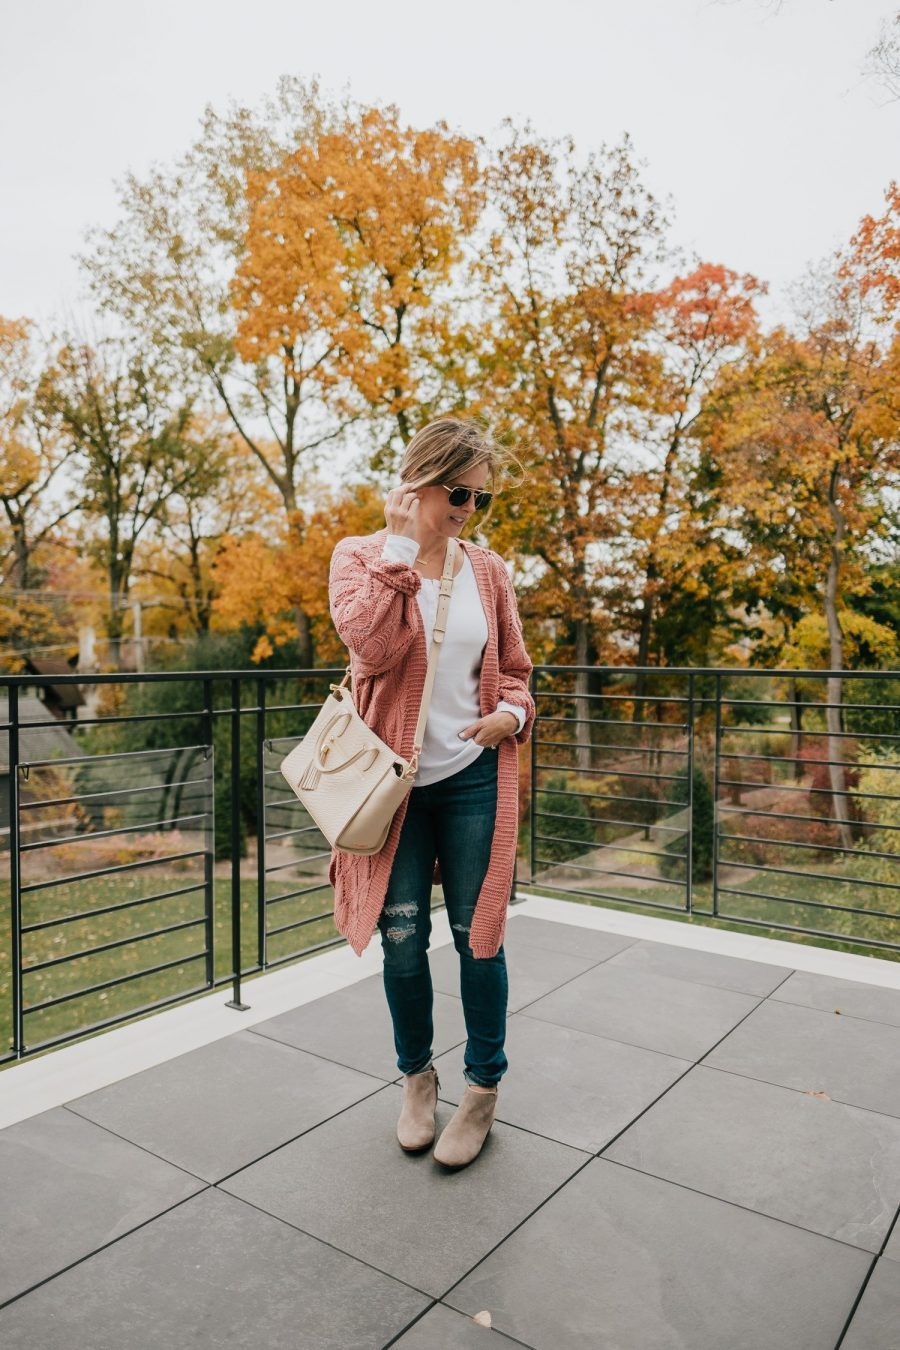 Thanksgiving outfit ideas--jeans, tee shit, cardigan, and booties